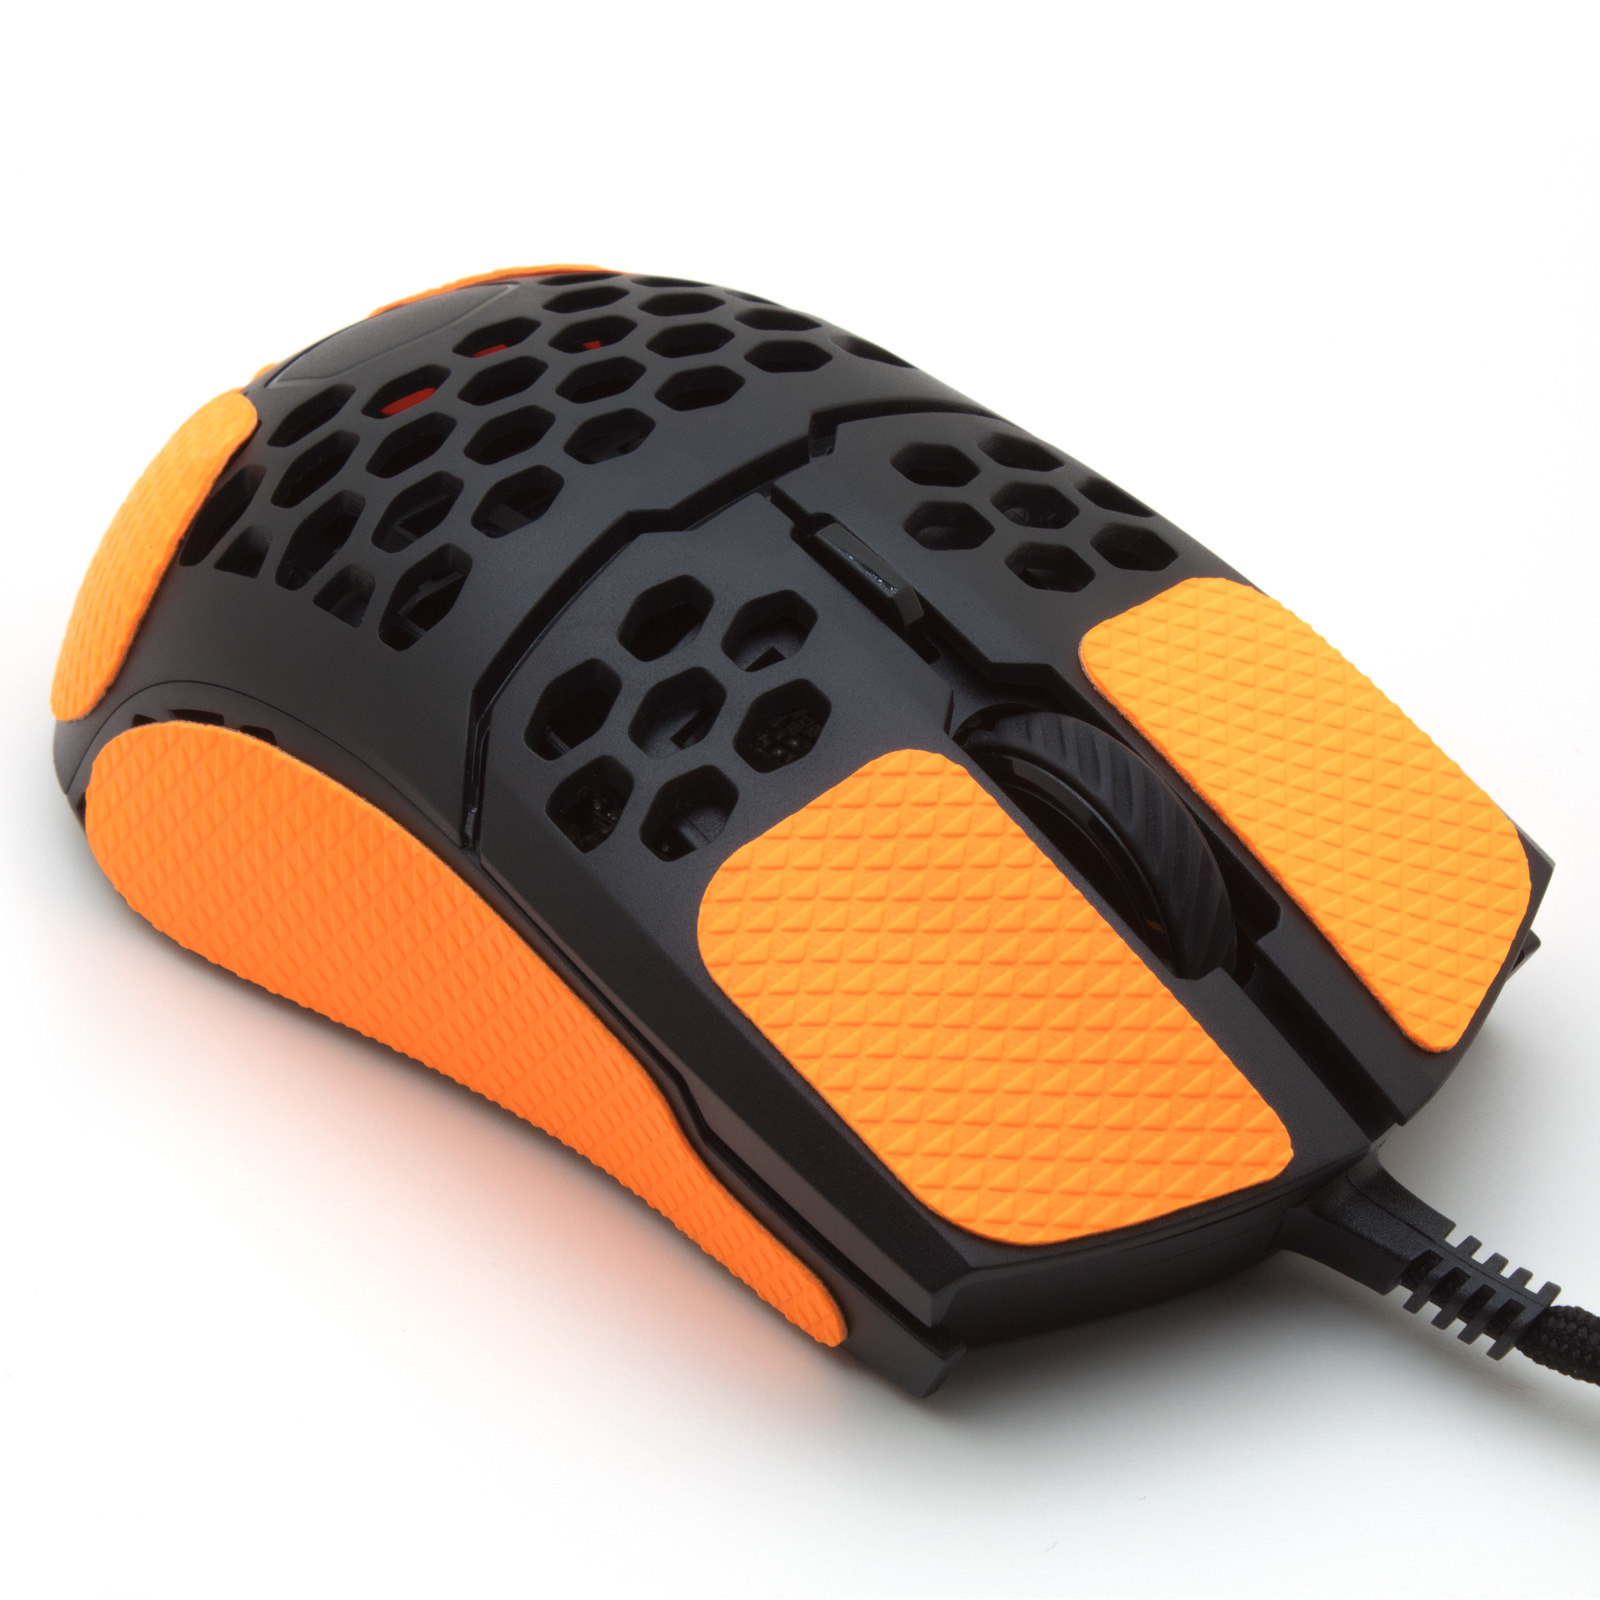 Mouse grip tape for Coolermaster MM710 from the brand TrueGrip - front right view